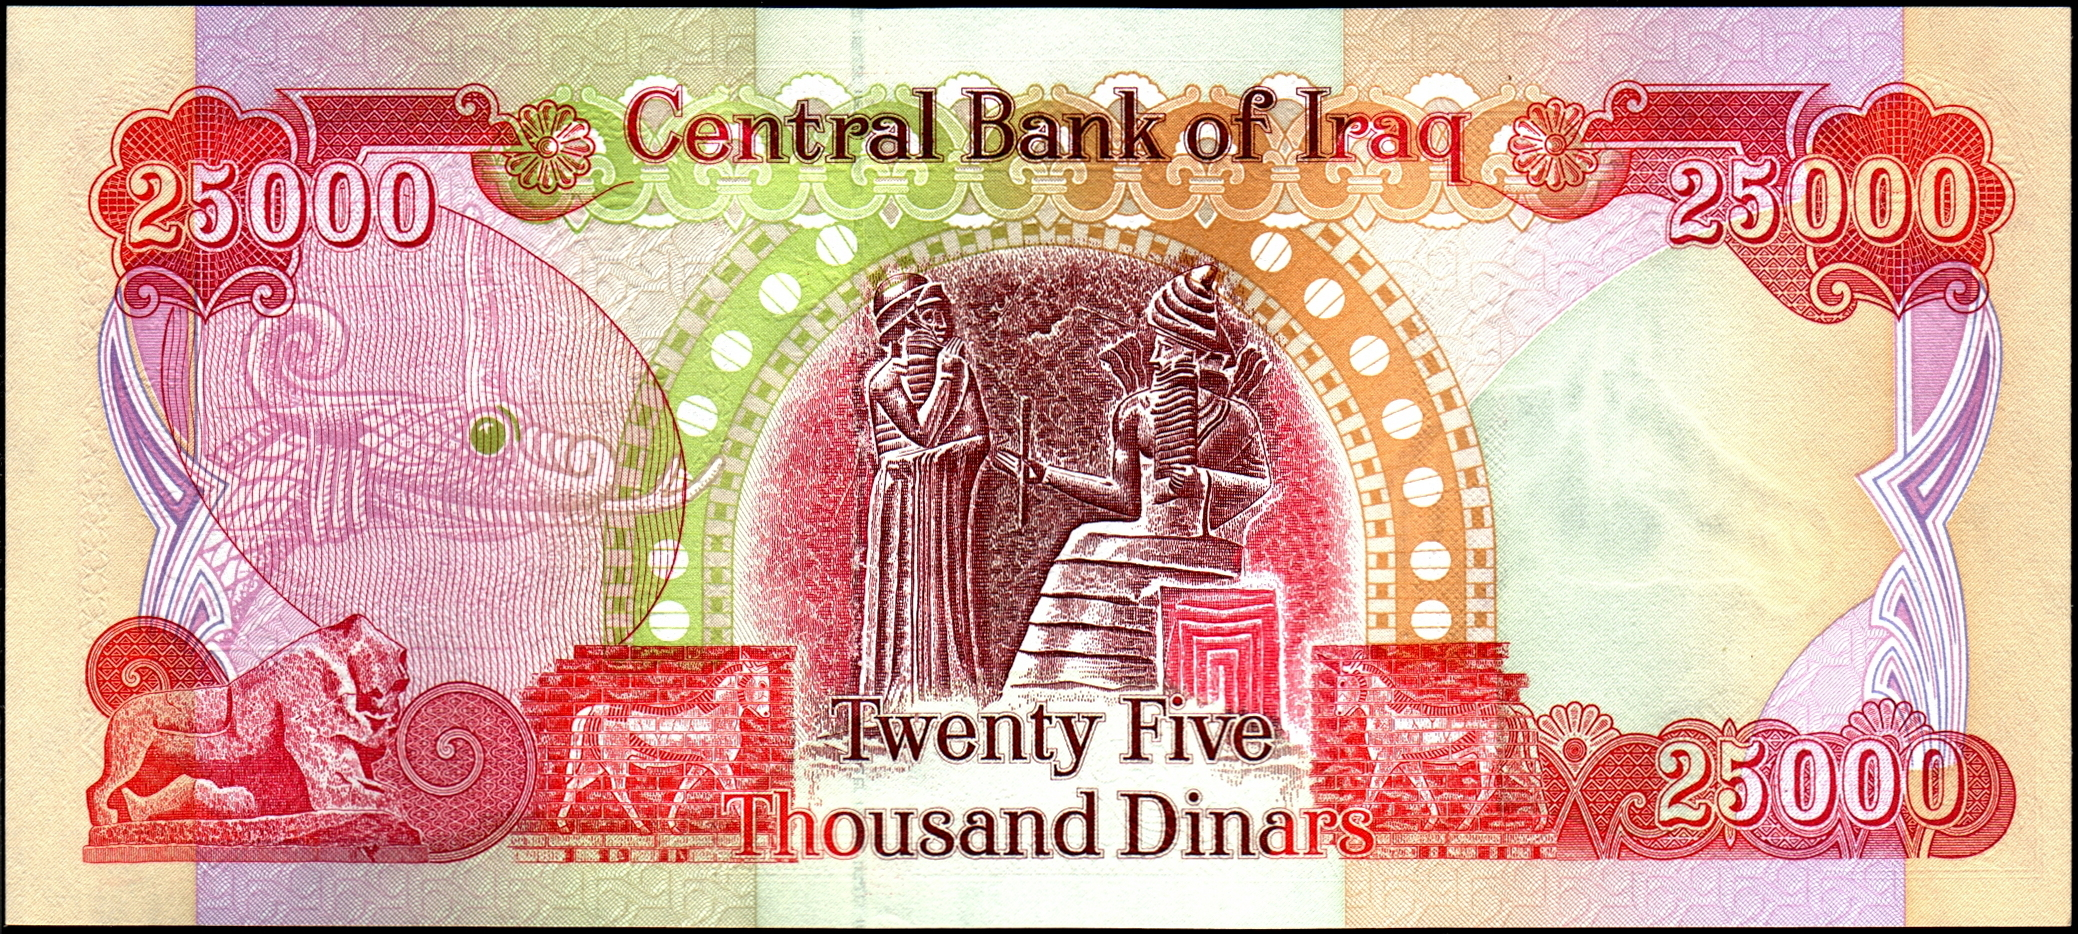 Important Things To Remember For Ing Iraqi Dinars